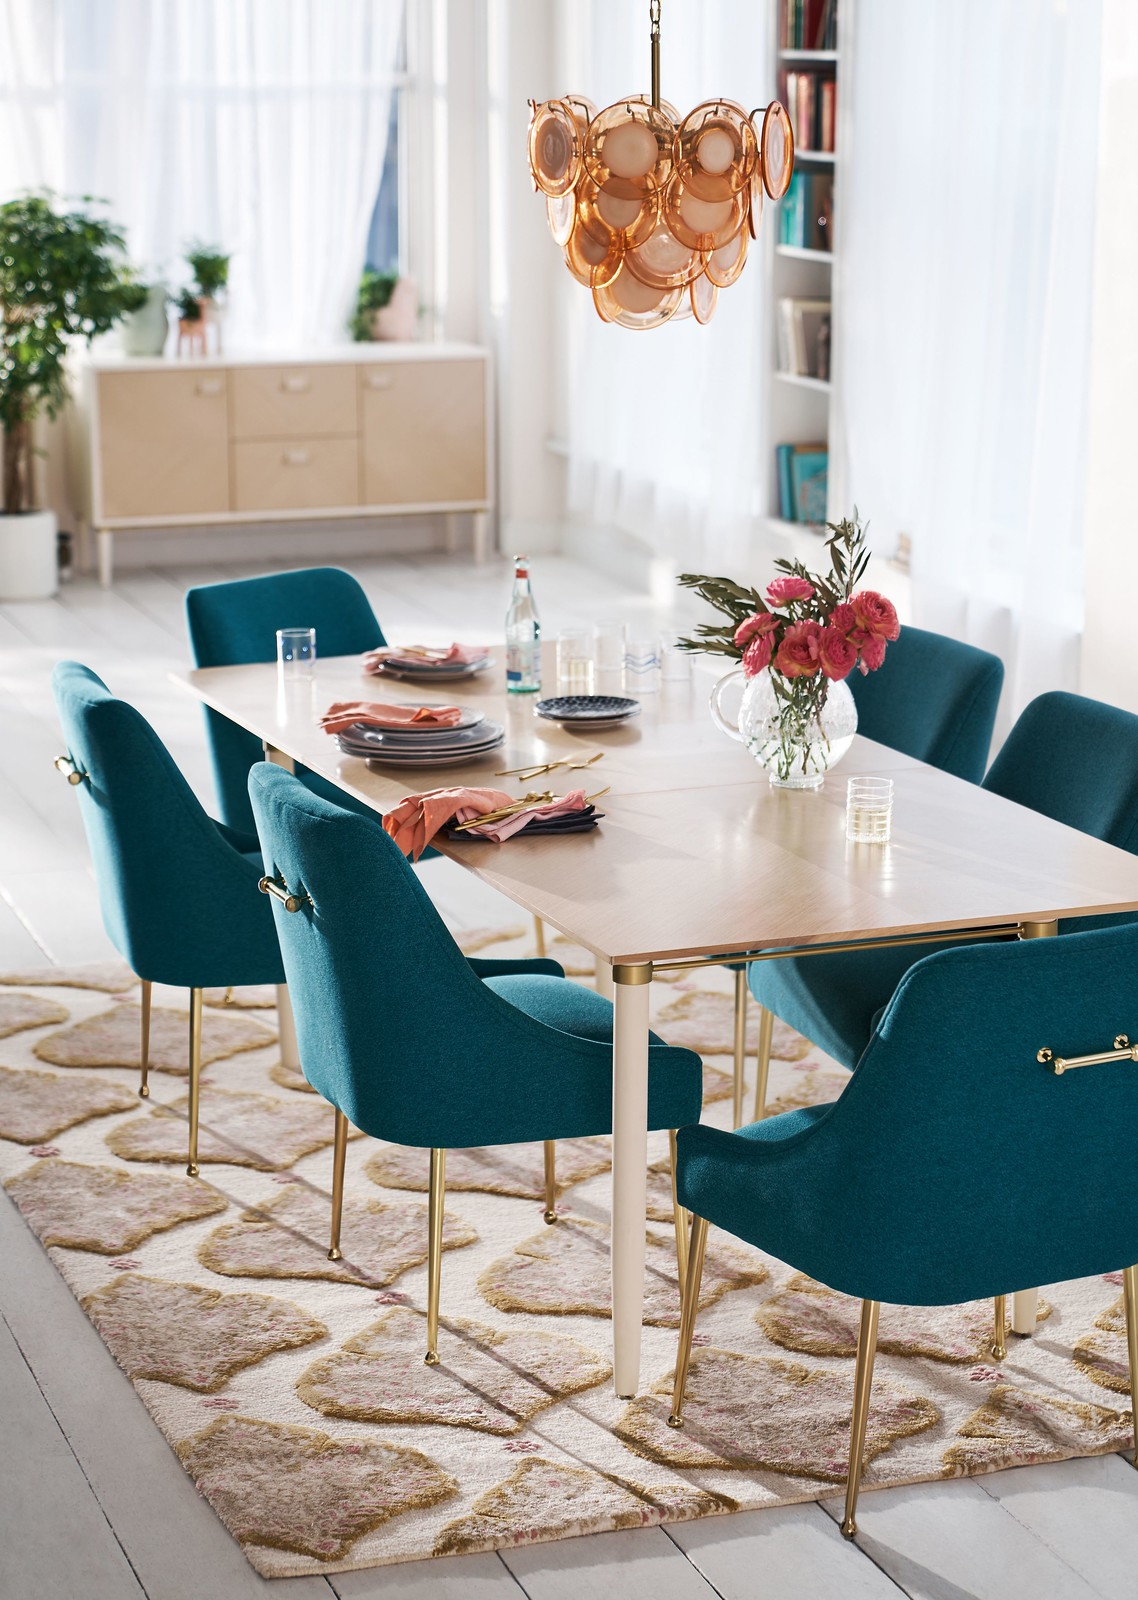 Anthropologie Velvet Elowen Chair | Teal Velvet Chairs | Velvet Dining Room Chairs | Velvet Dining Chairs | Dining Room Inspiration | Dining Room Ideas | Dining Room Decor | Rose Gold Chandelier Light Fixture